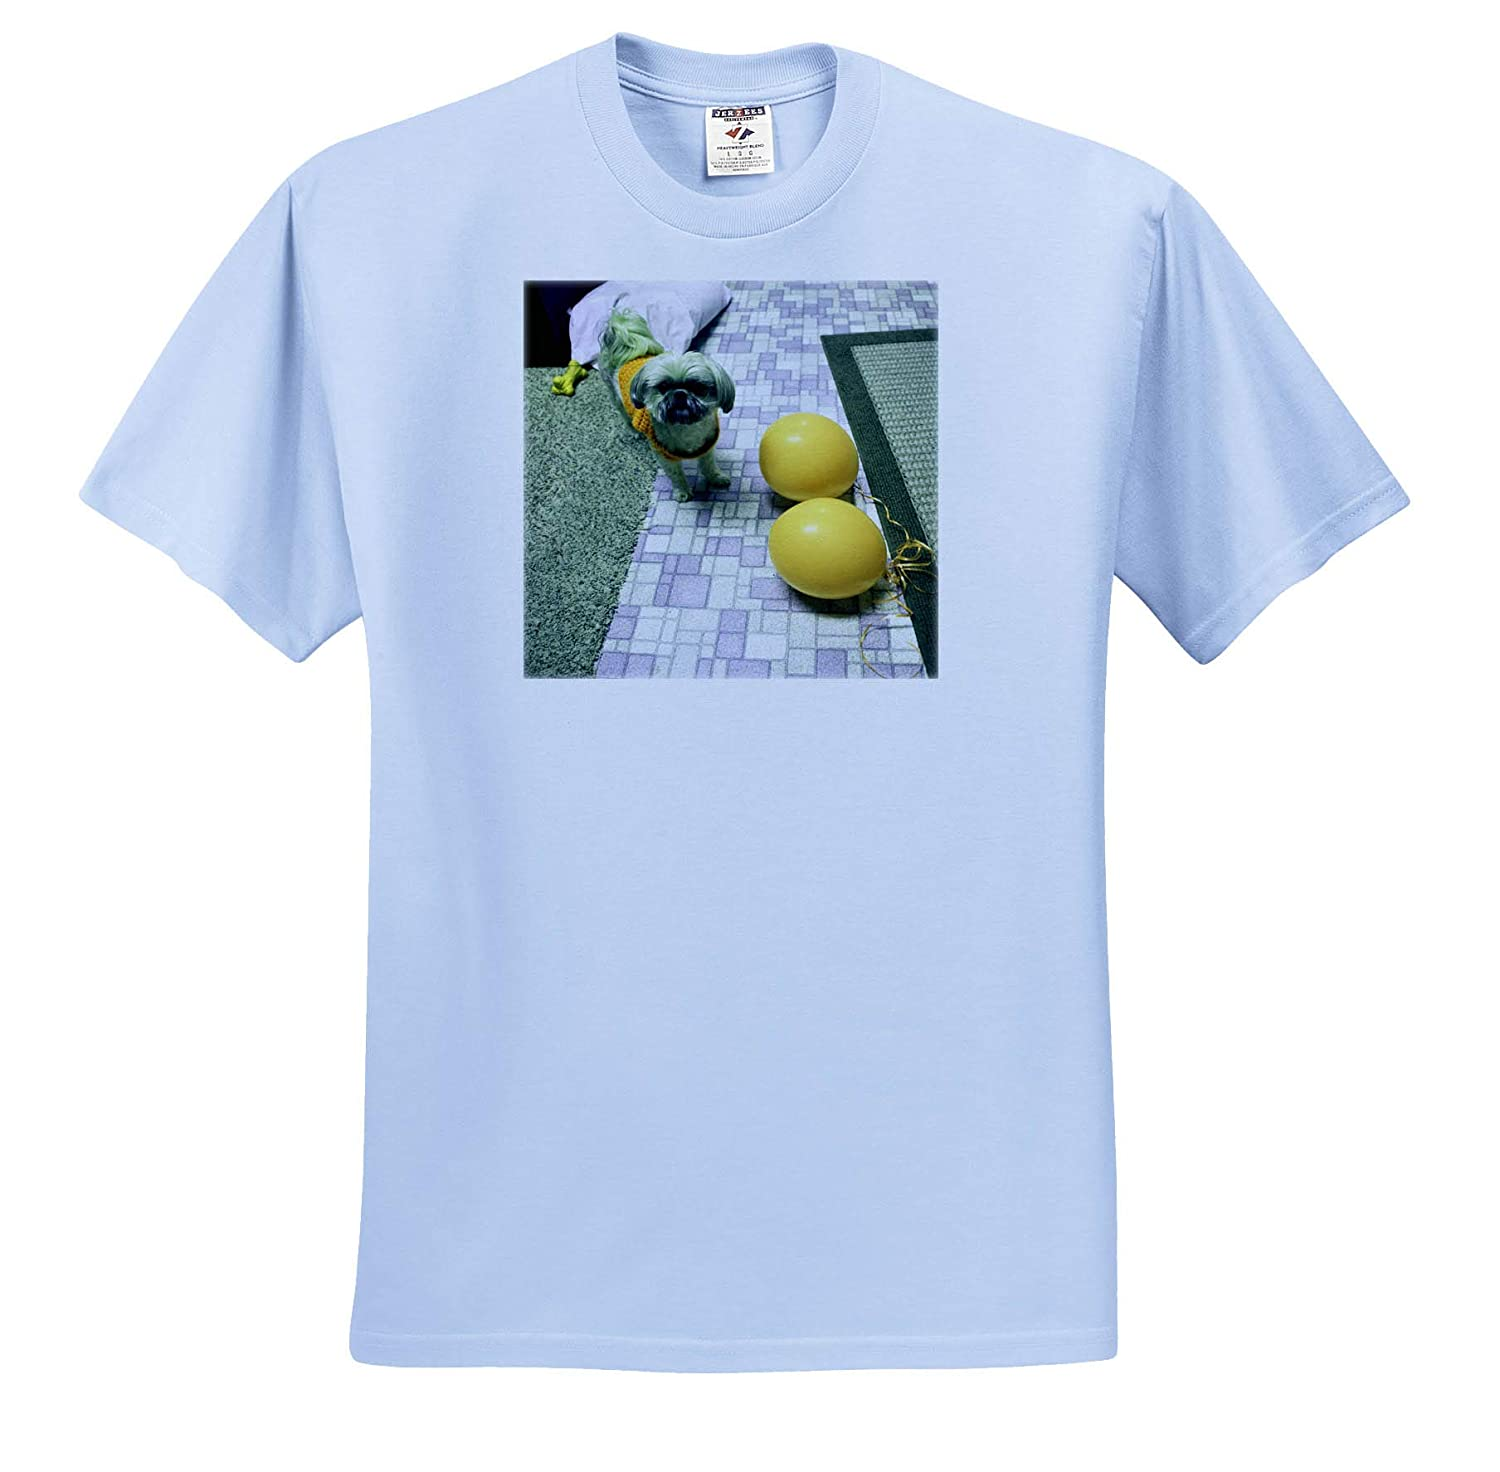 A Green and Yellow hue on a Puppy with Balloons 3dRose Jos Fauxtographee- Shih Tzu ts/_317885 Adult T-Shirt XL